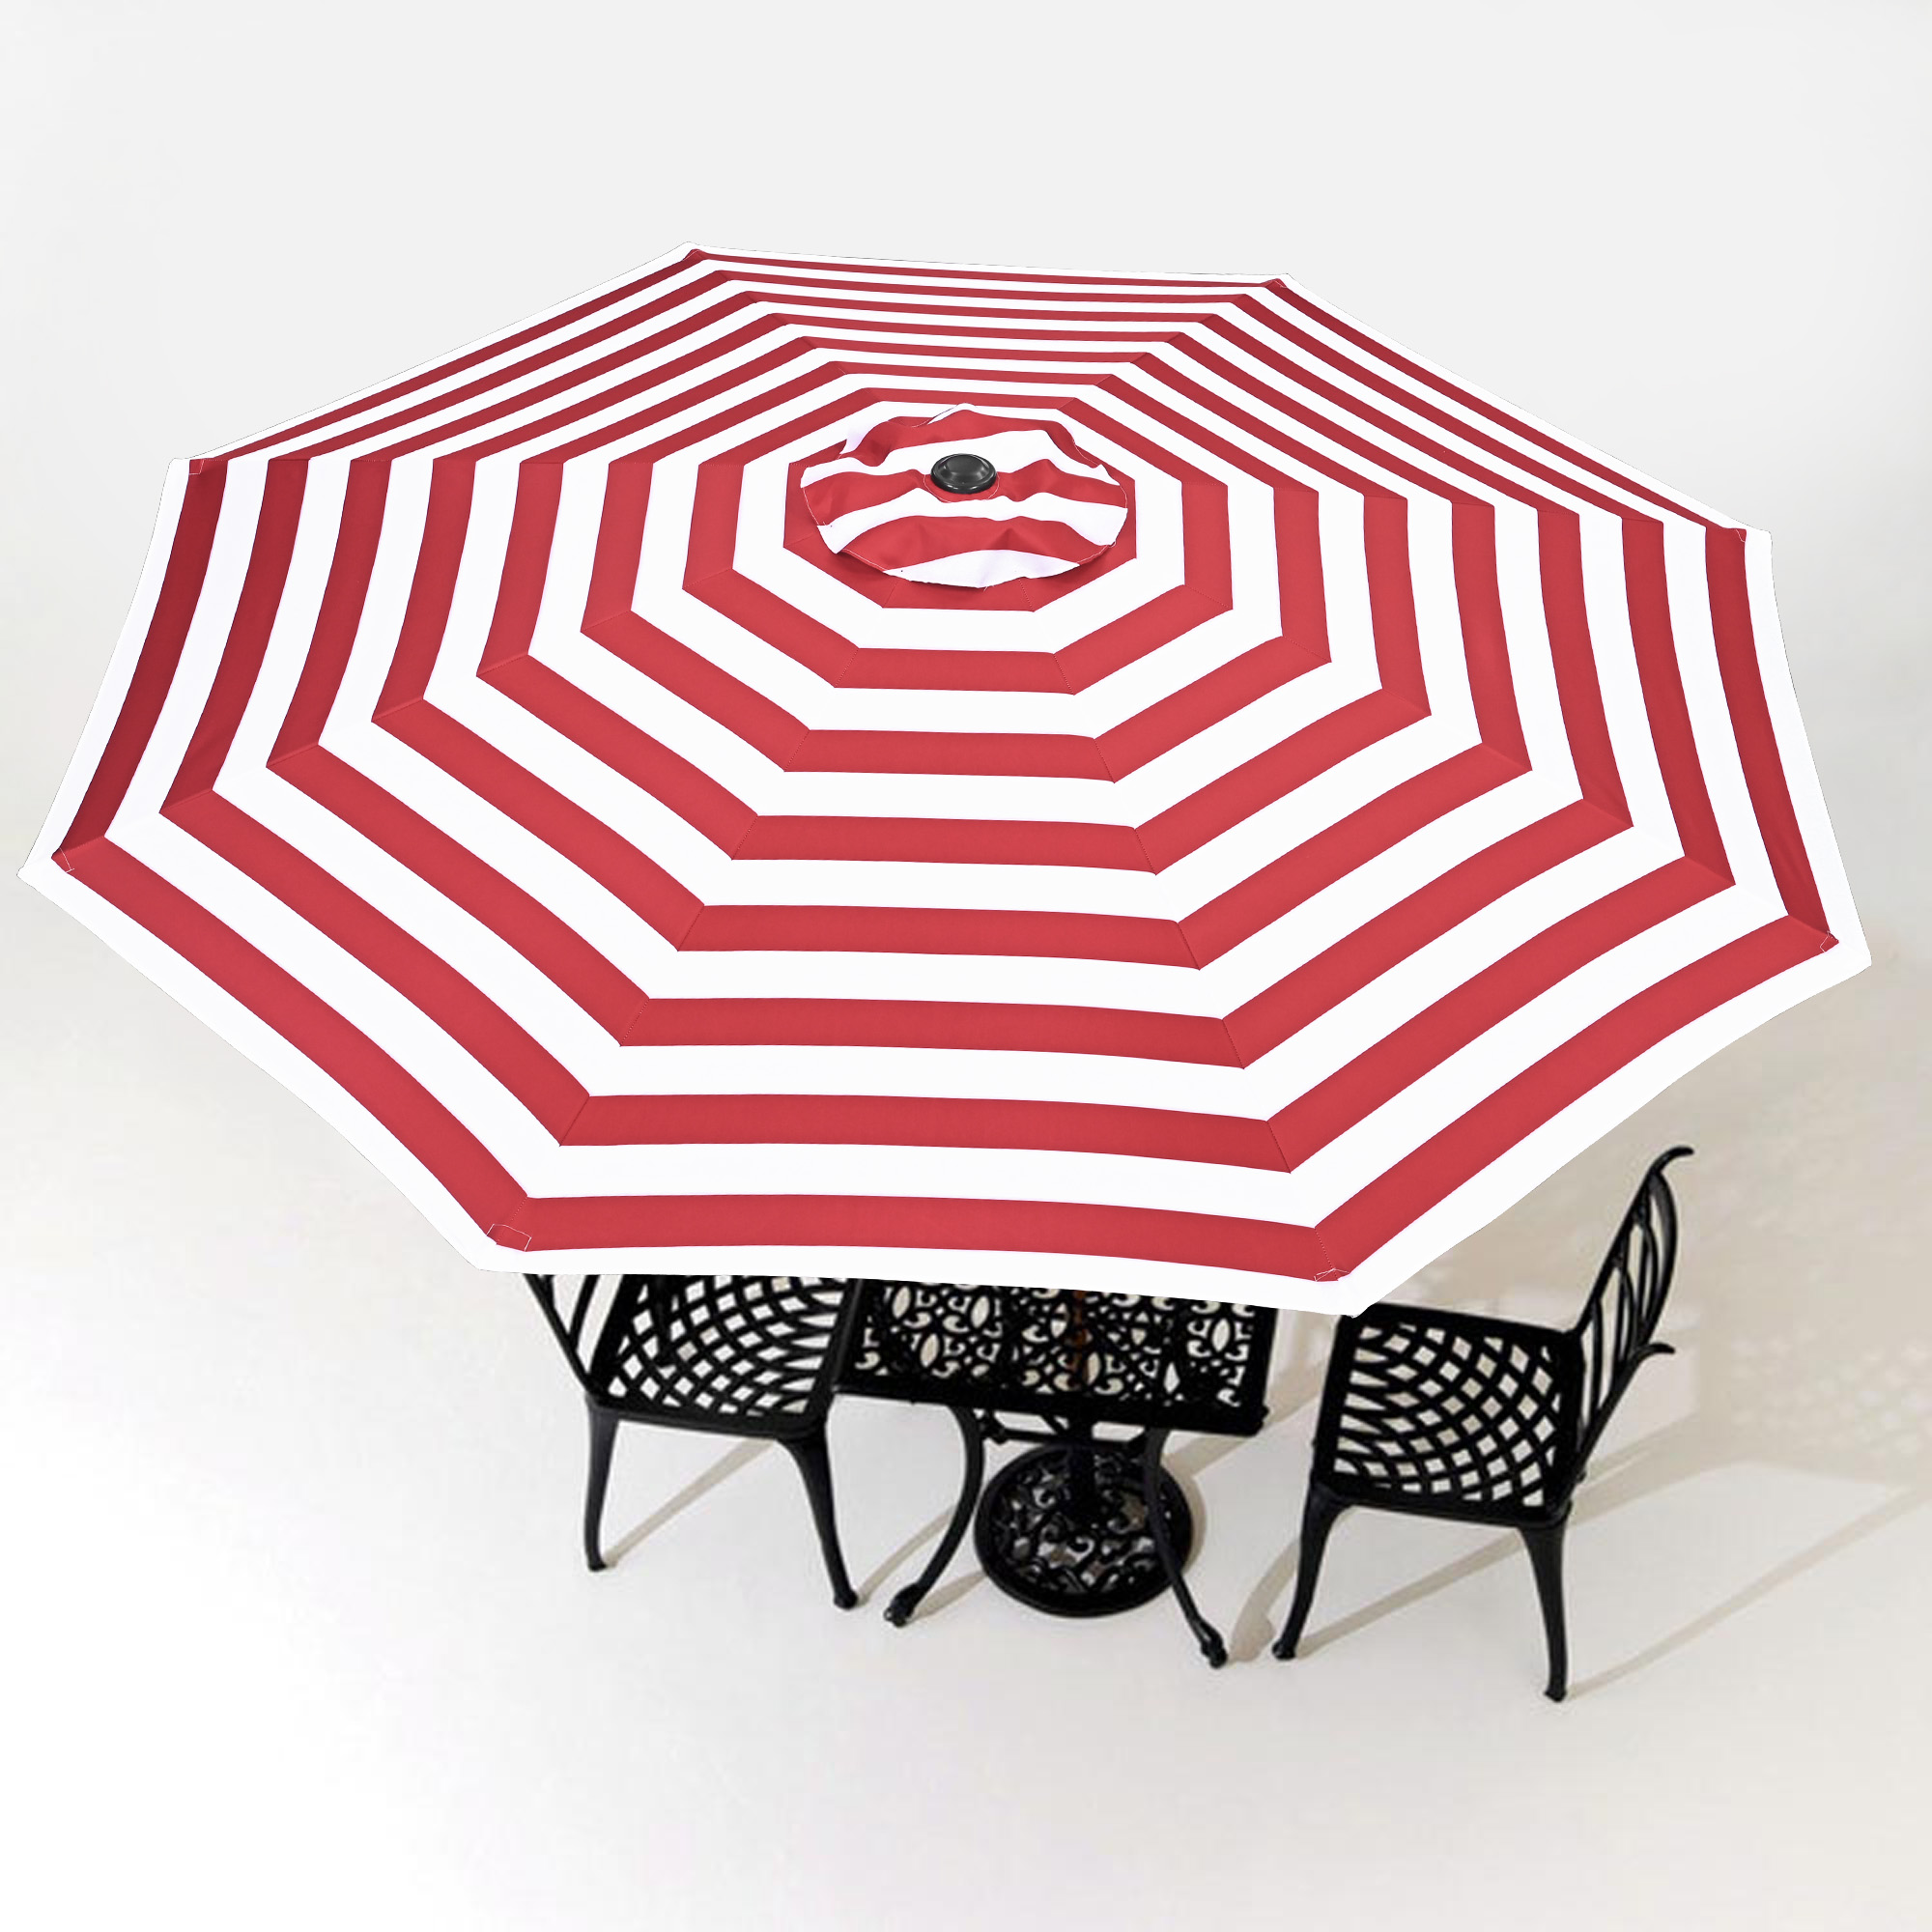 thumbnail 405 - 8'/9'/10'/13' Umbrella Replacement Canopy 8 Rib Outdoor Patio Top Cover Only Opt